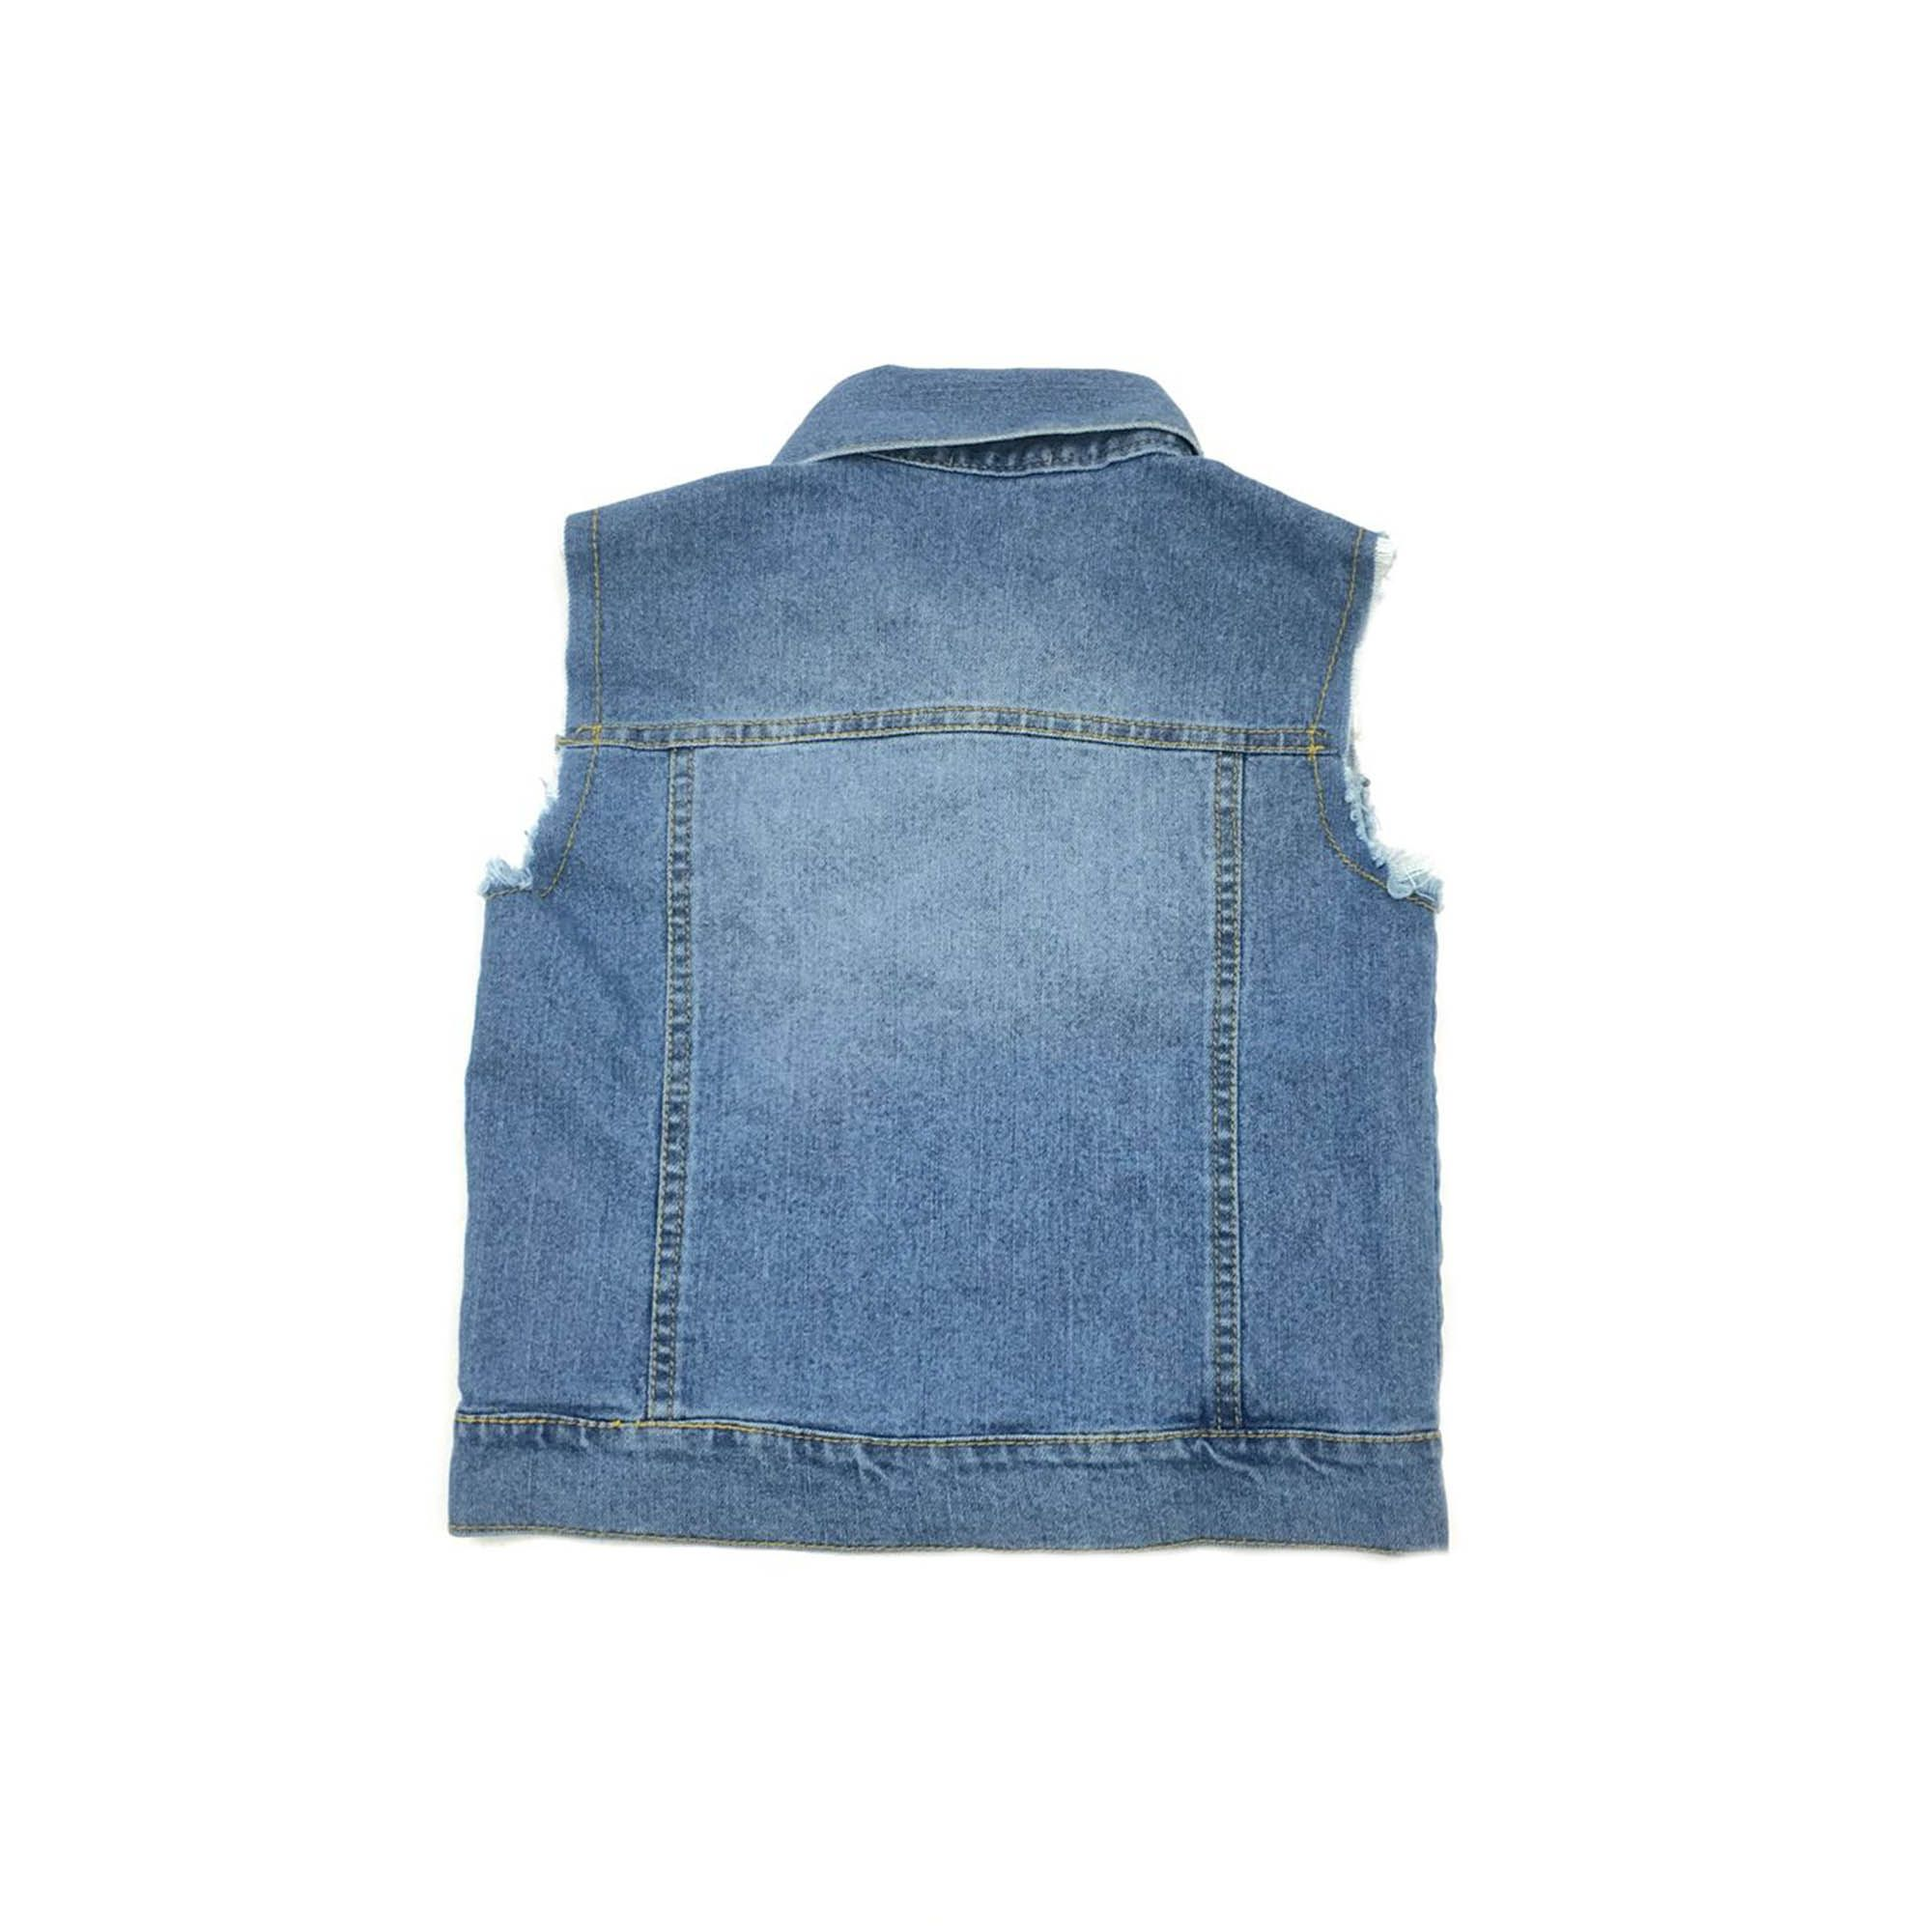 Colete Jeans Bambollina 10892